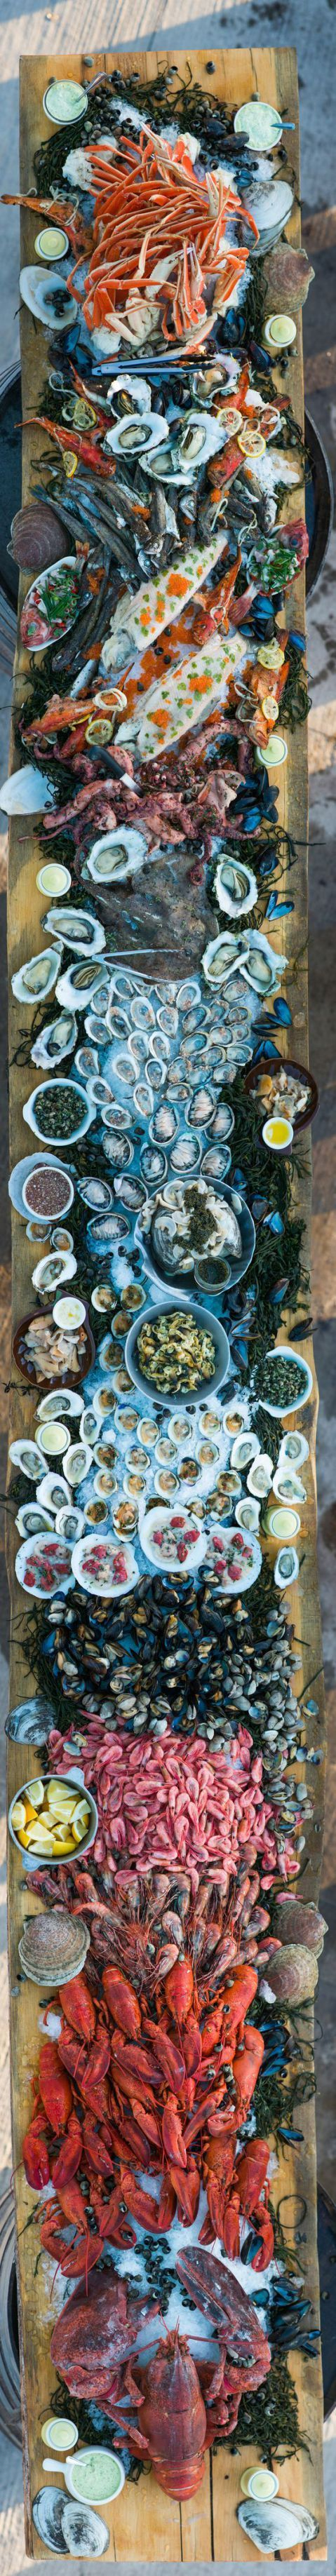 283 best SEAFOOD images on Pinterest | Seafood rice recipe, Barbecue ...